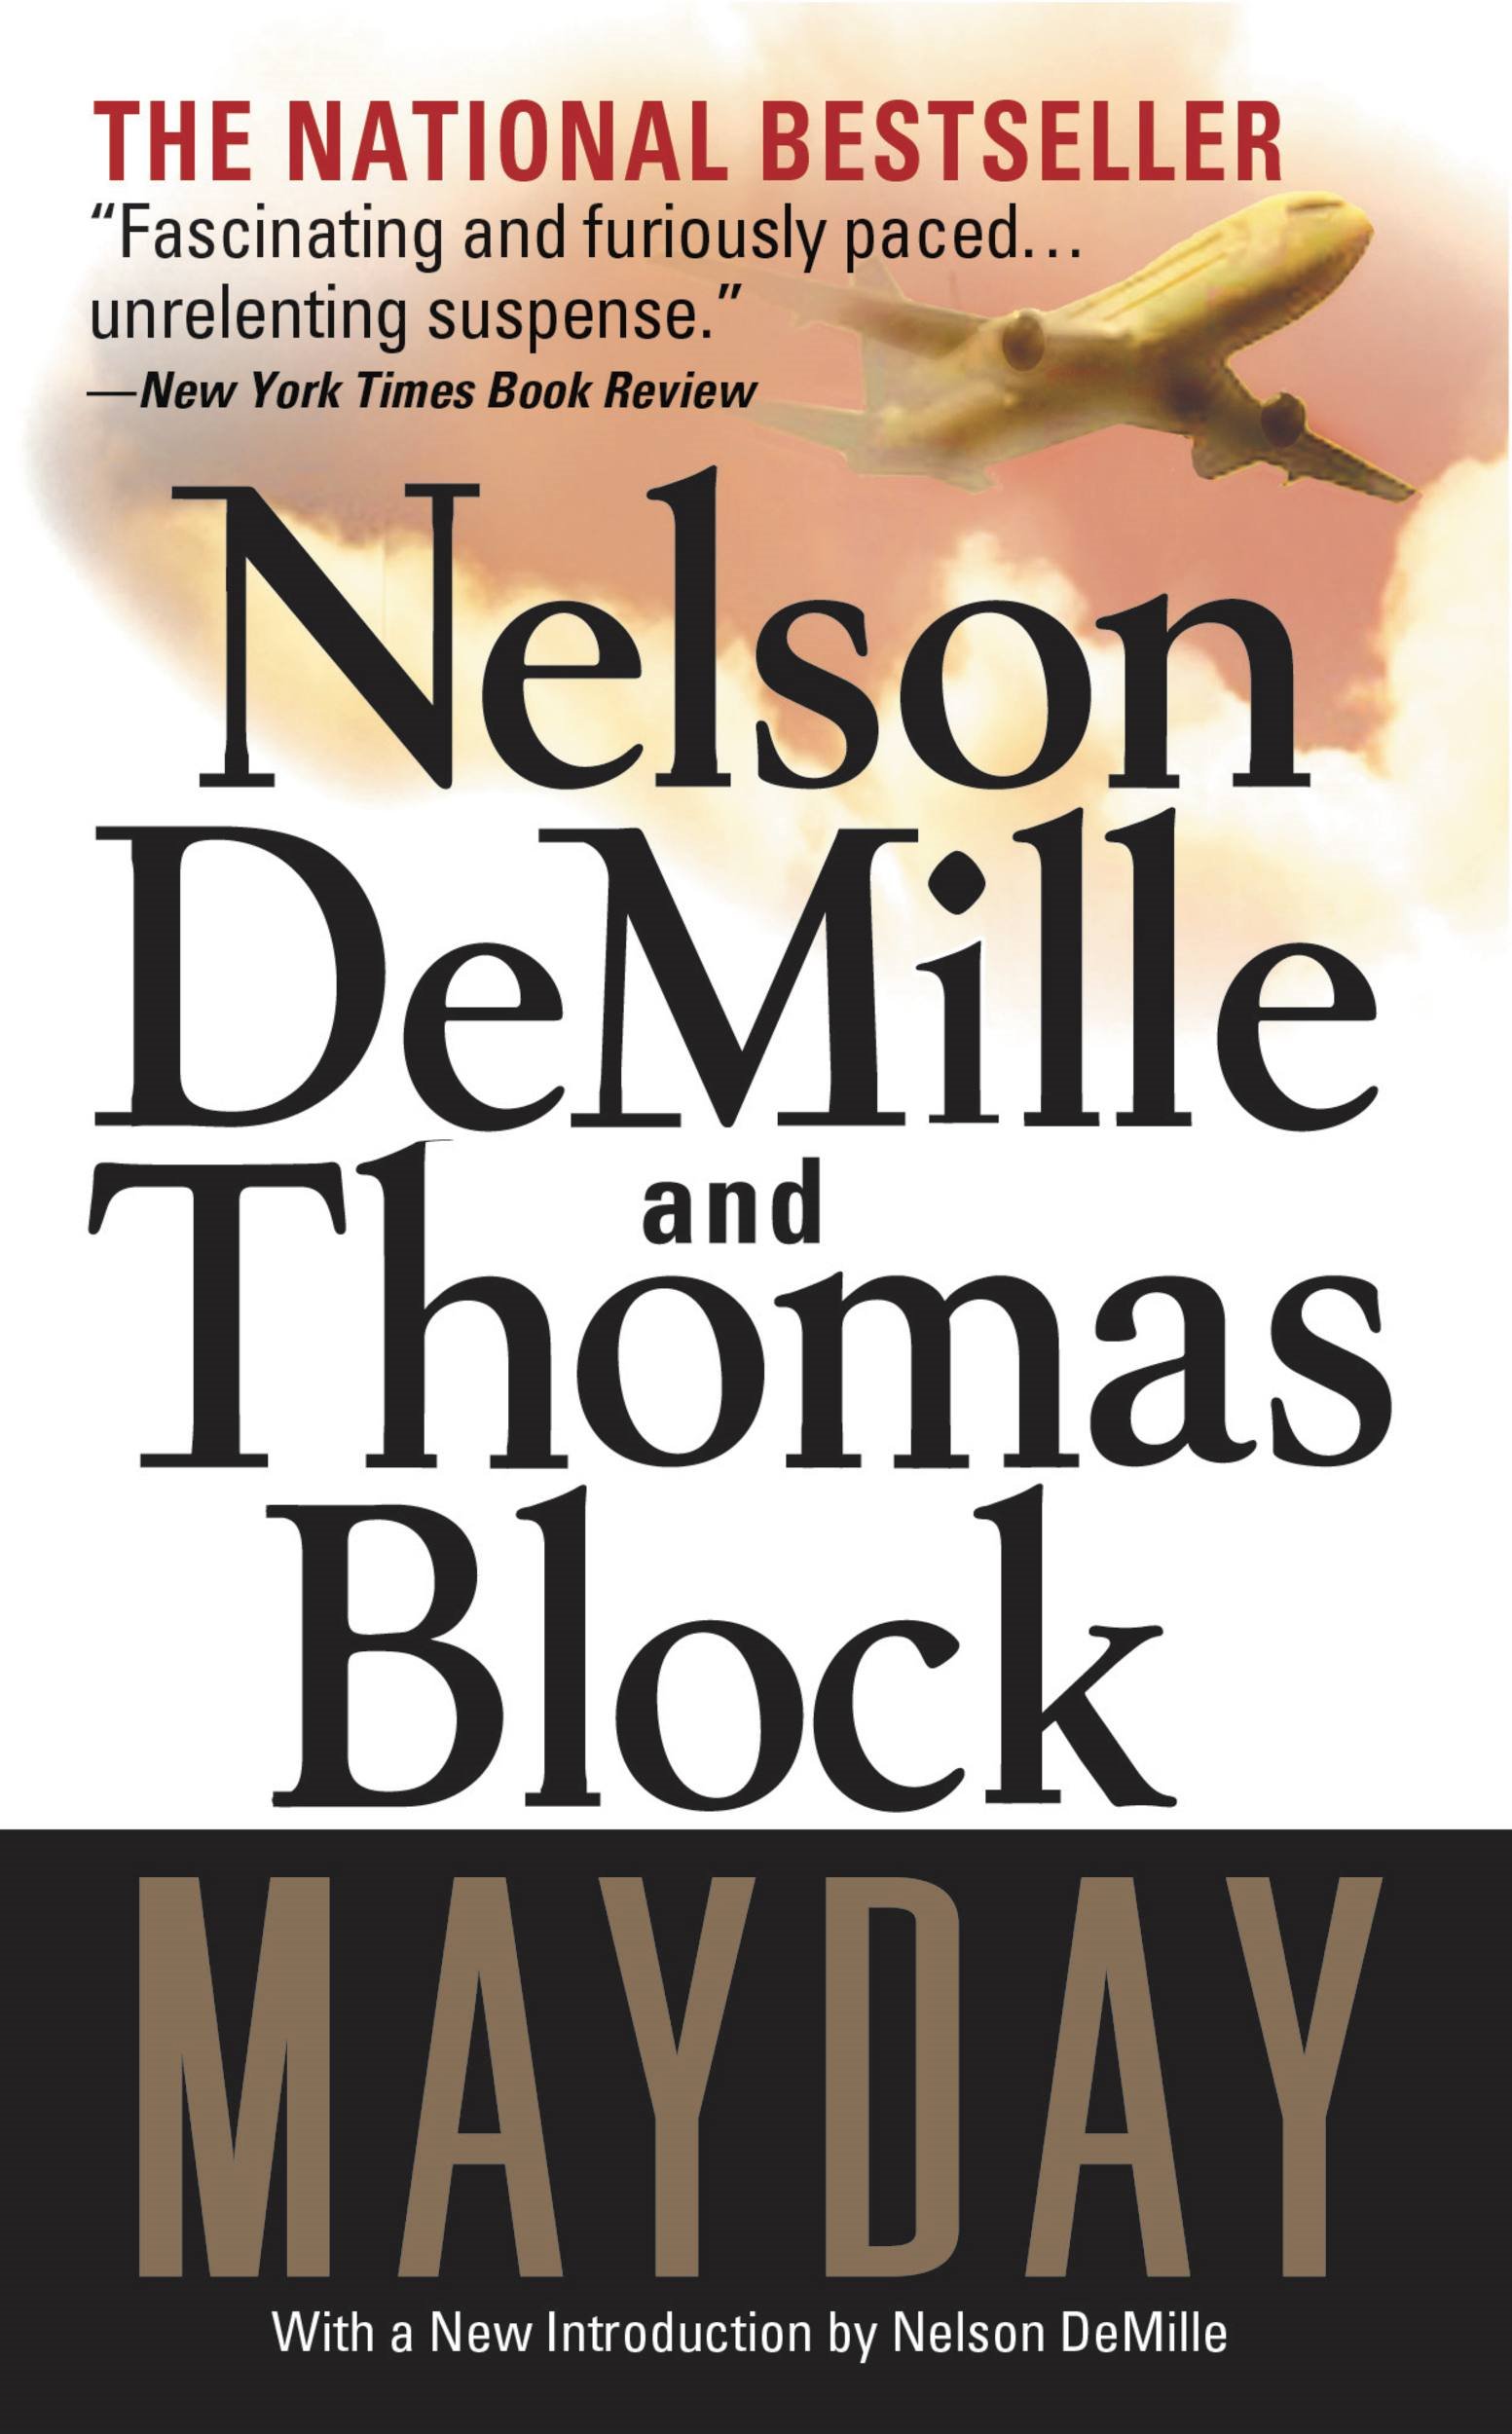 Mayday By: Nelson DeMille,Thomas Block